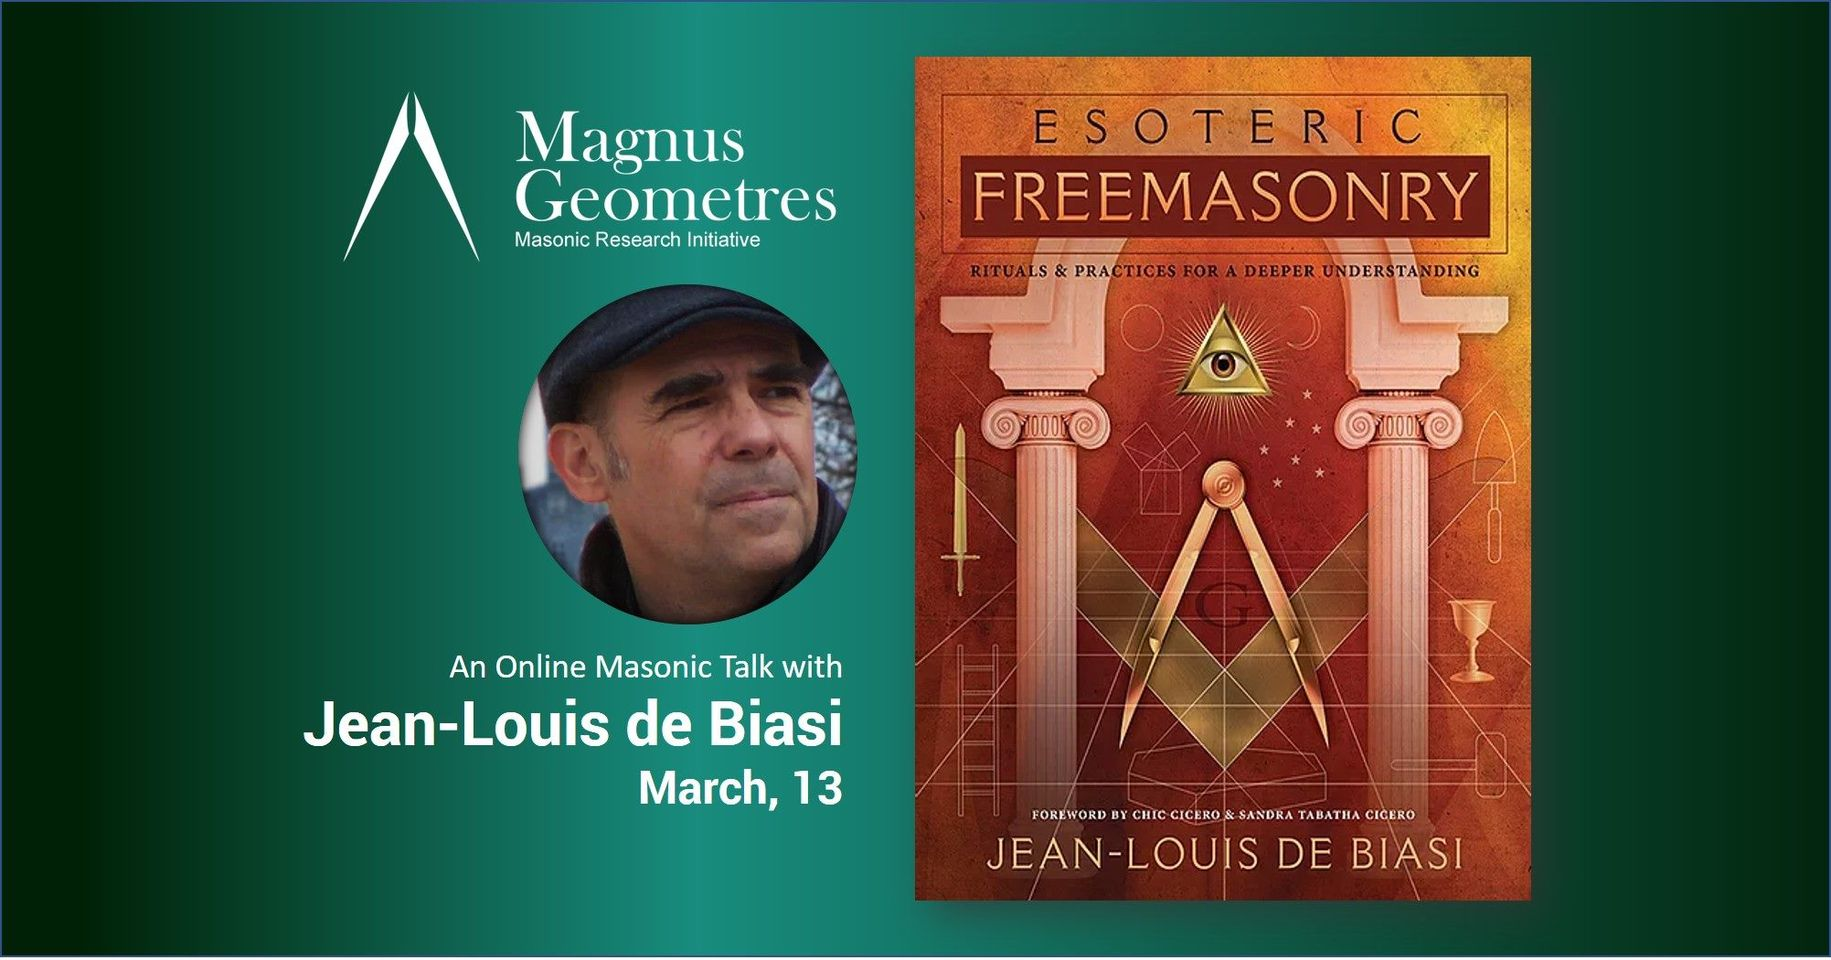 149566759 265798921822290 7760305535090122266 o Esoteric Freemasonry: Rituals & Practices for a Deeper Understanding